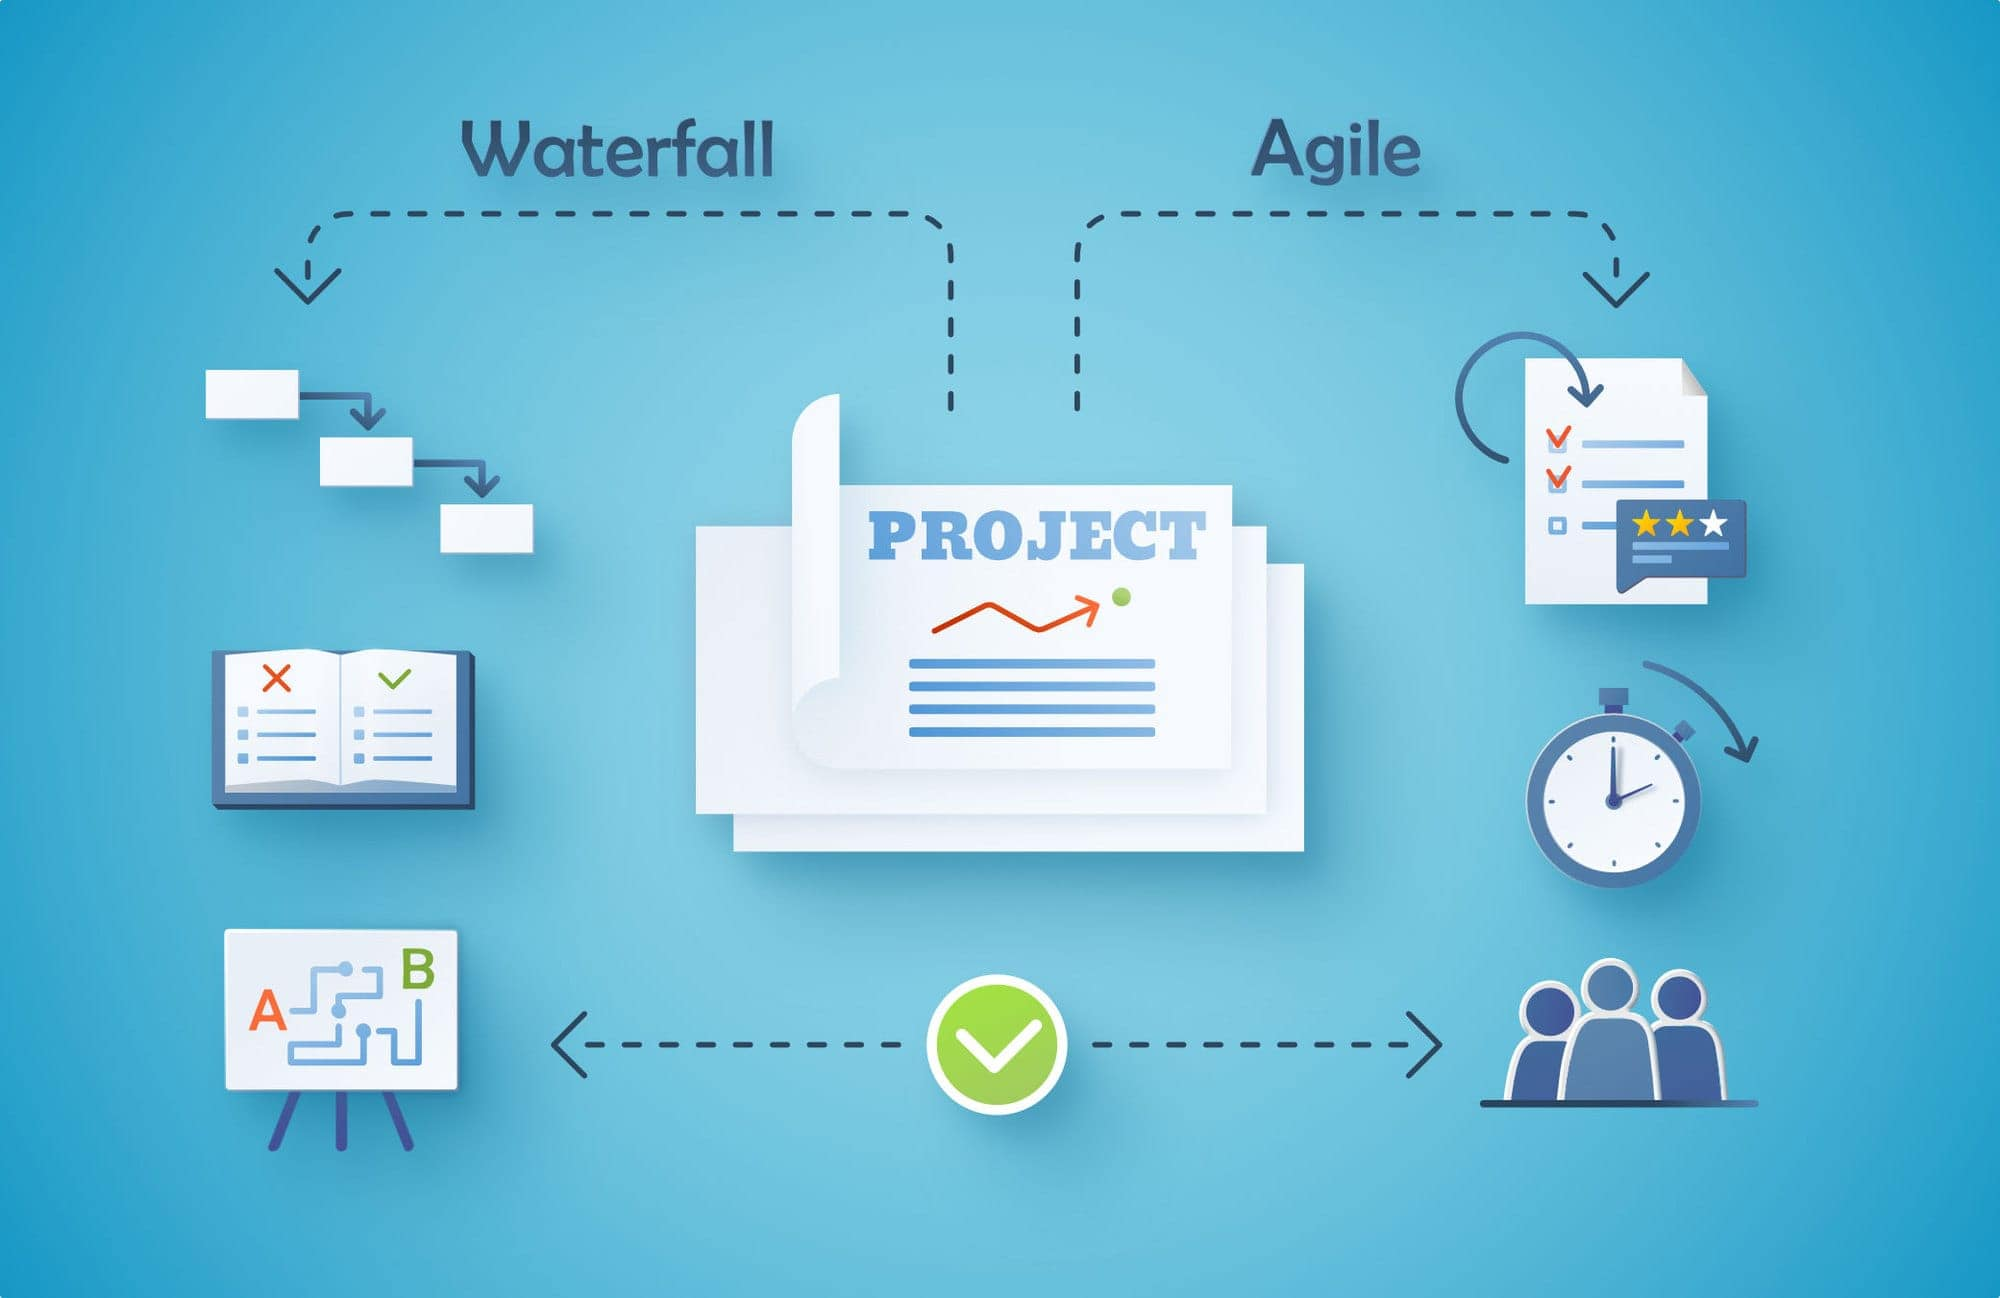 What is the difference between Agile Vs. Waterfall?